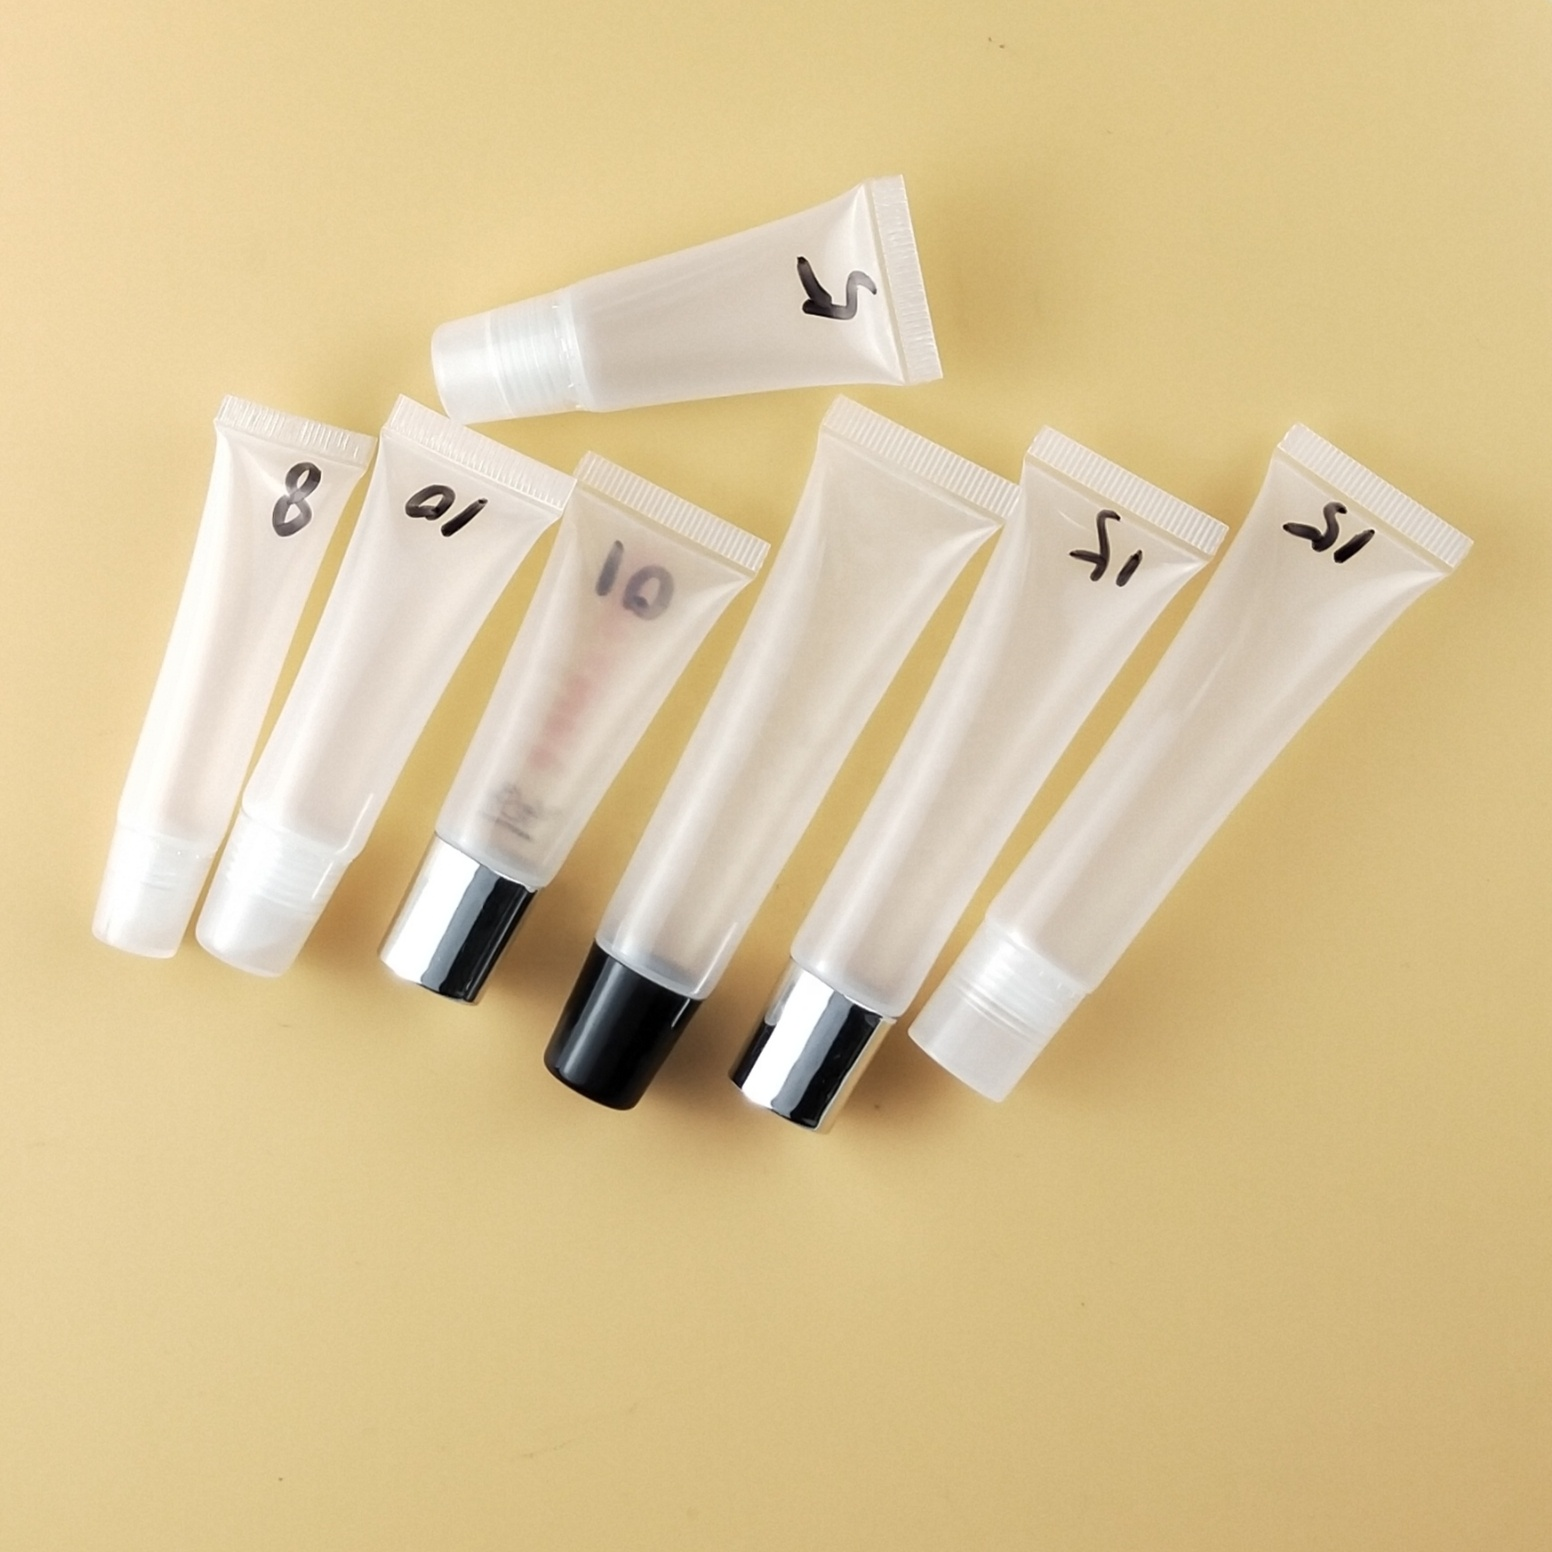 15ml 8ml Low MOQ private label custom logo transparent lip balm squeeze tube lipgloss squeeze tube